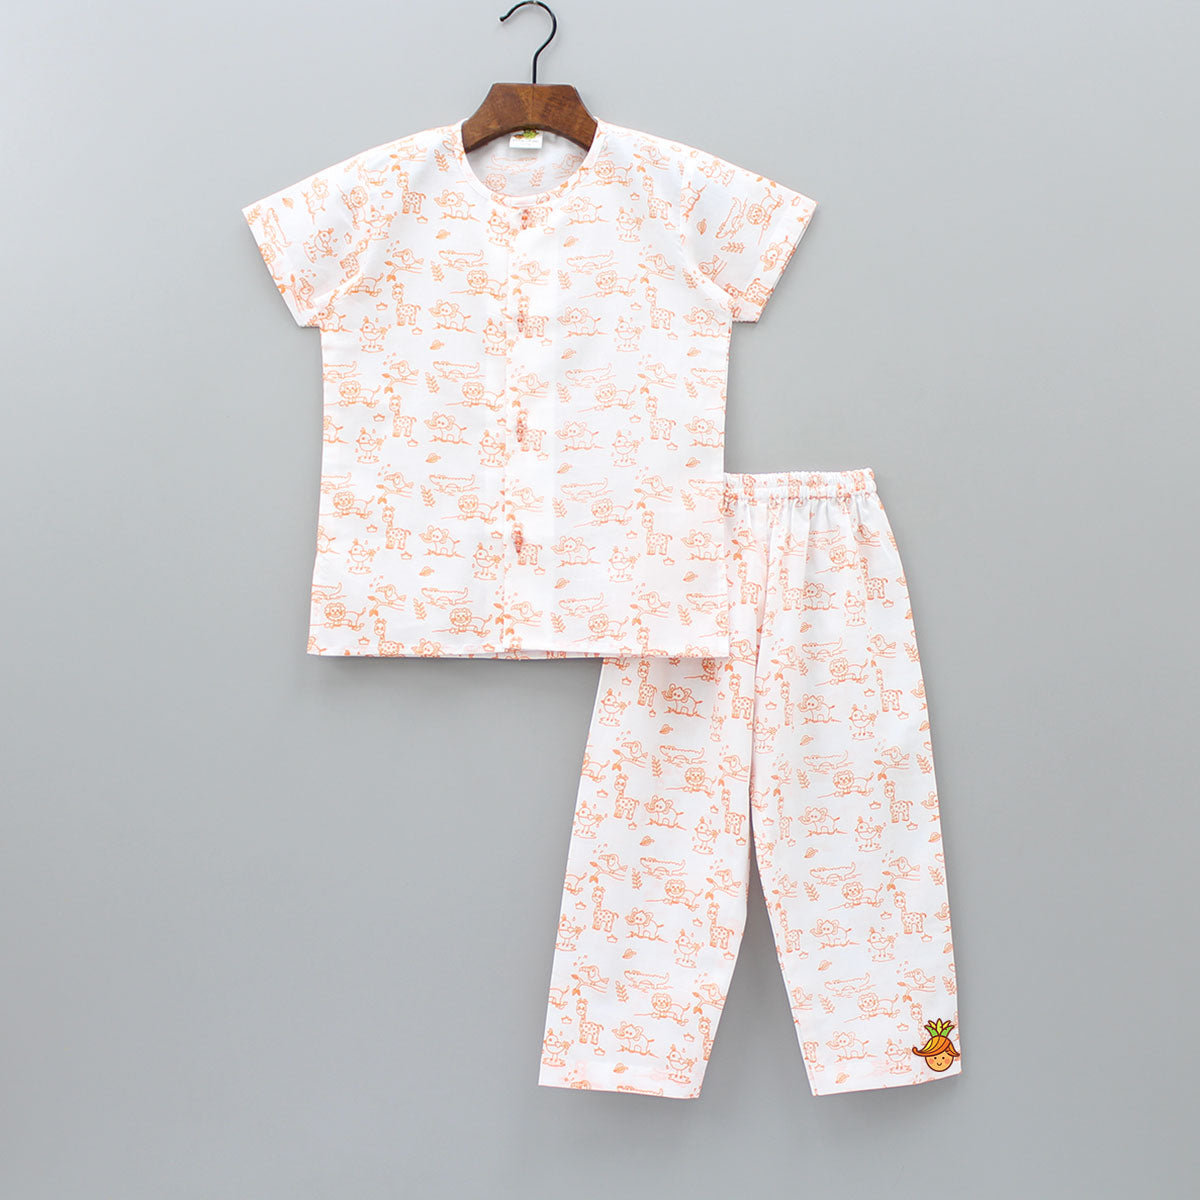 Orange Forest Print Half Sleeves Sleepwear